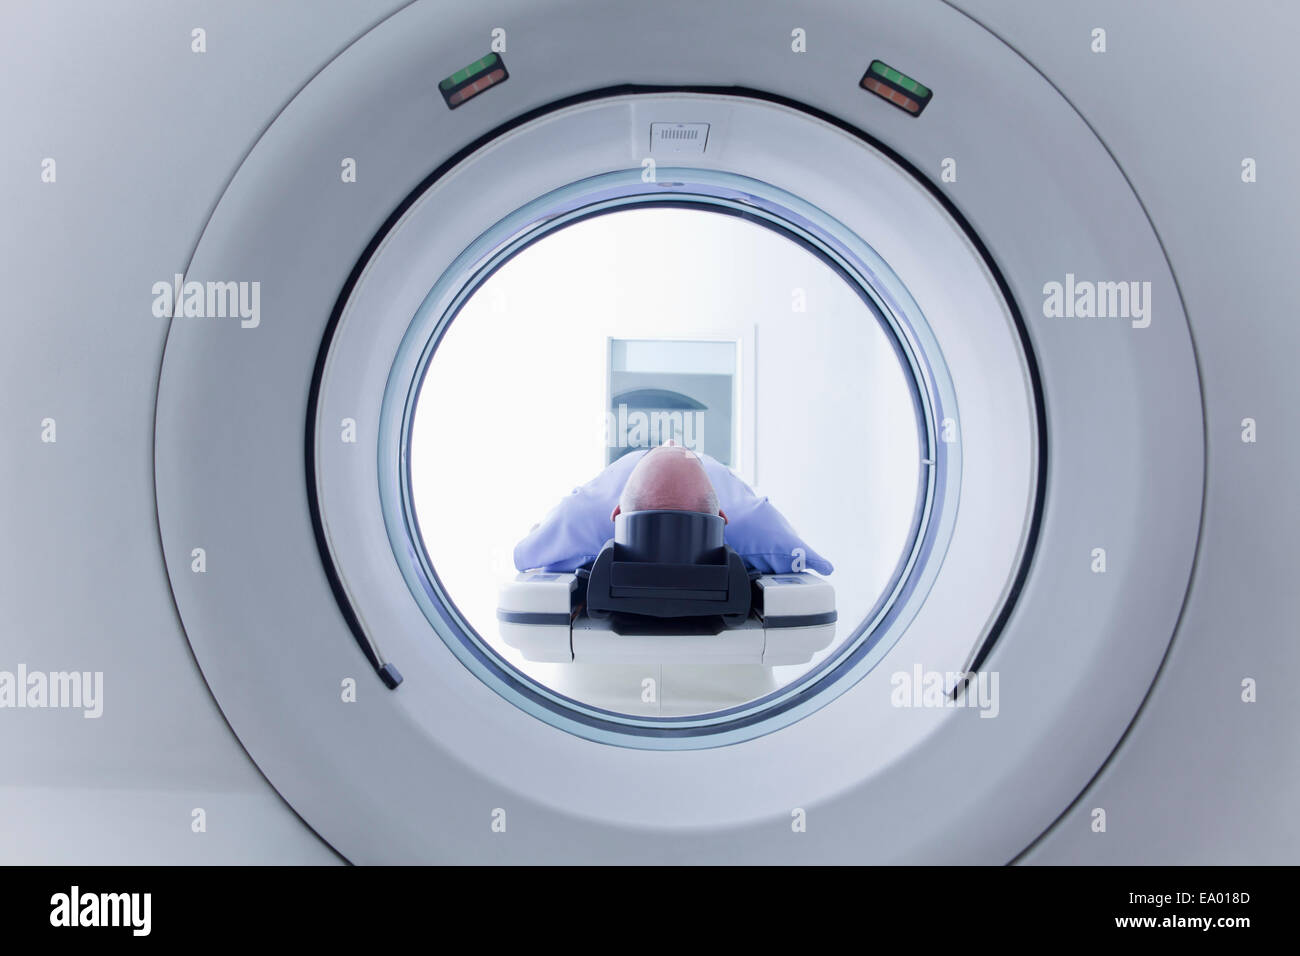 Patient lying down on CT scanner - Stock Image